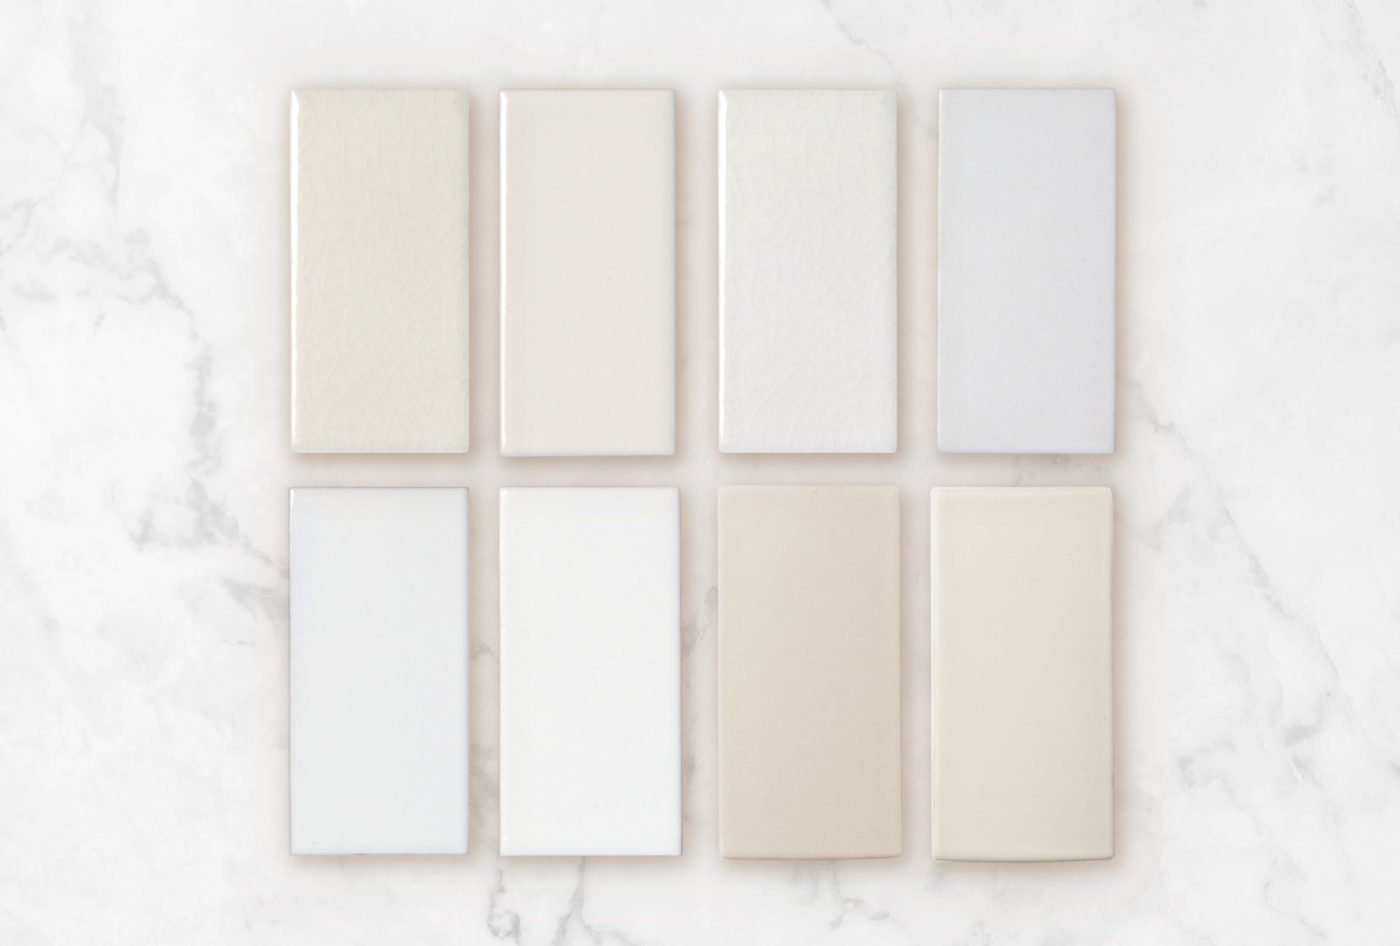 2020 Q1 Fireclay Favorites Whites Magnolia Tusk Frost Daisy White Wash Calcite Ivory Feldspar